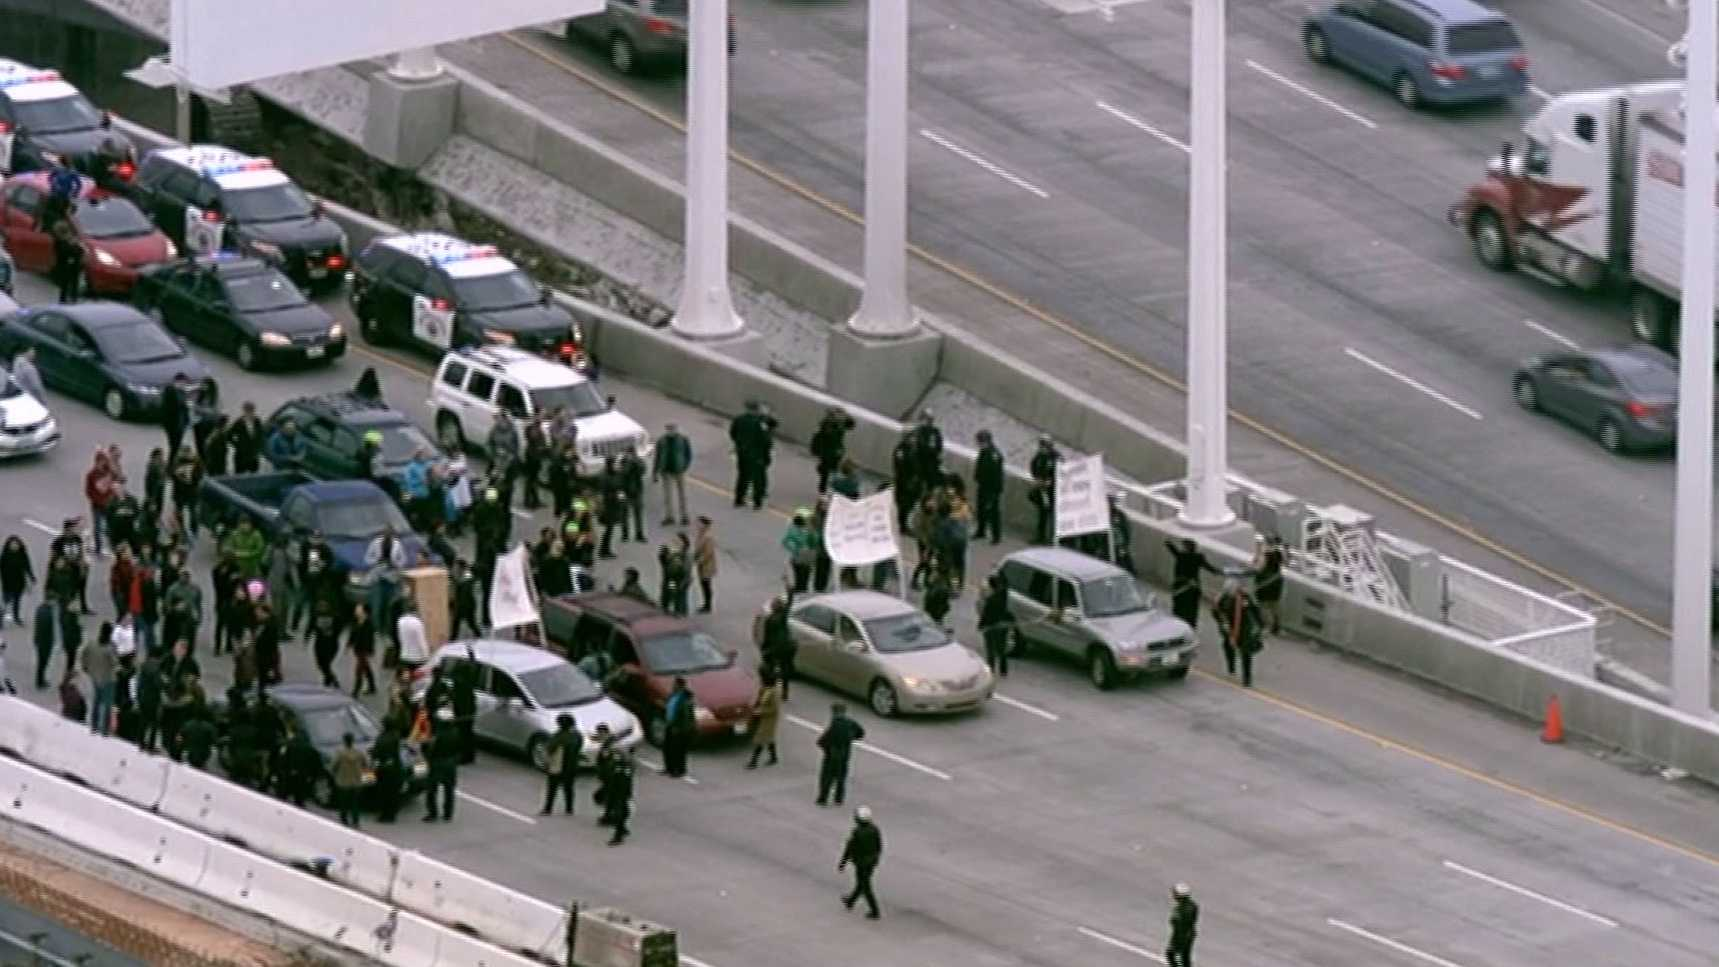 Protesters block traffic on the Bay Bridge,westbound Highway 80, on Monday, Jan. 18, 2016, as part of an MLK Day march.